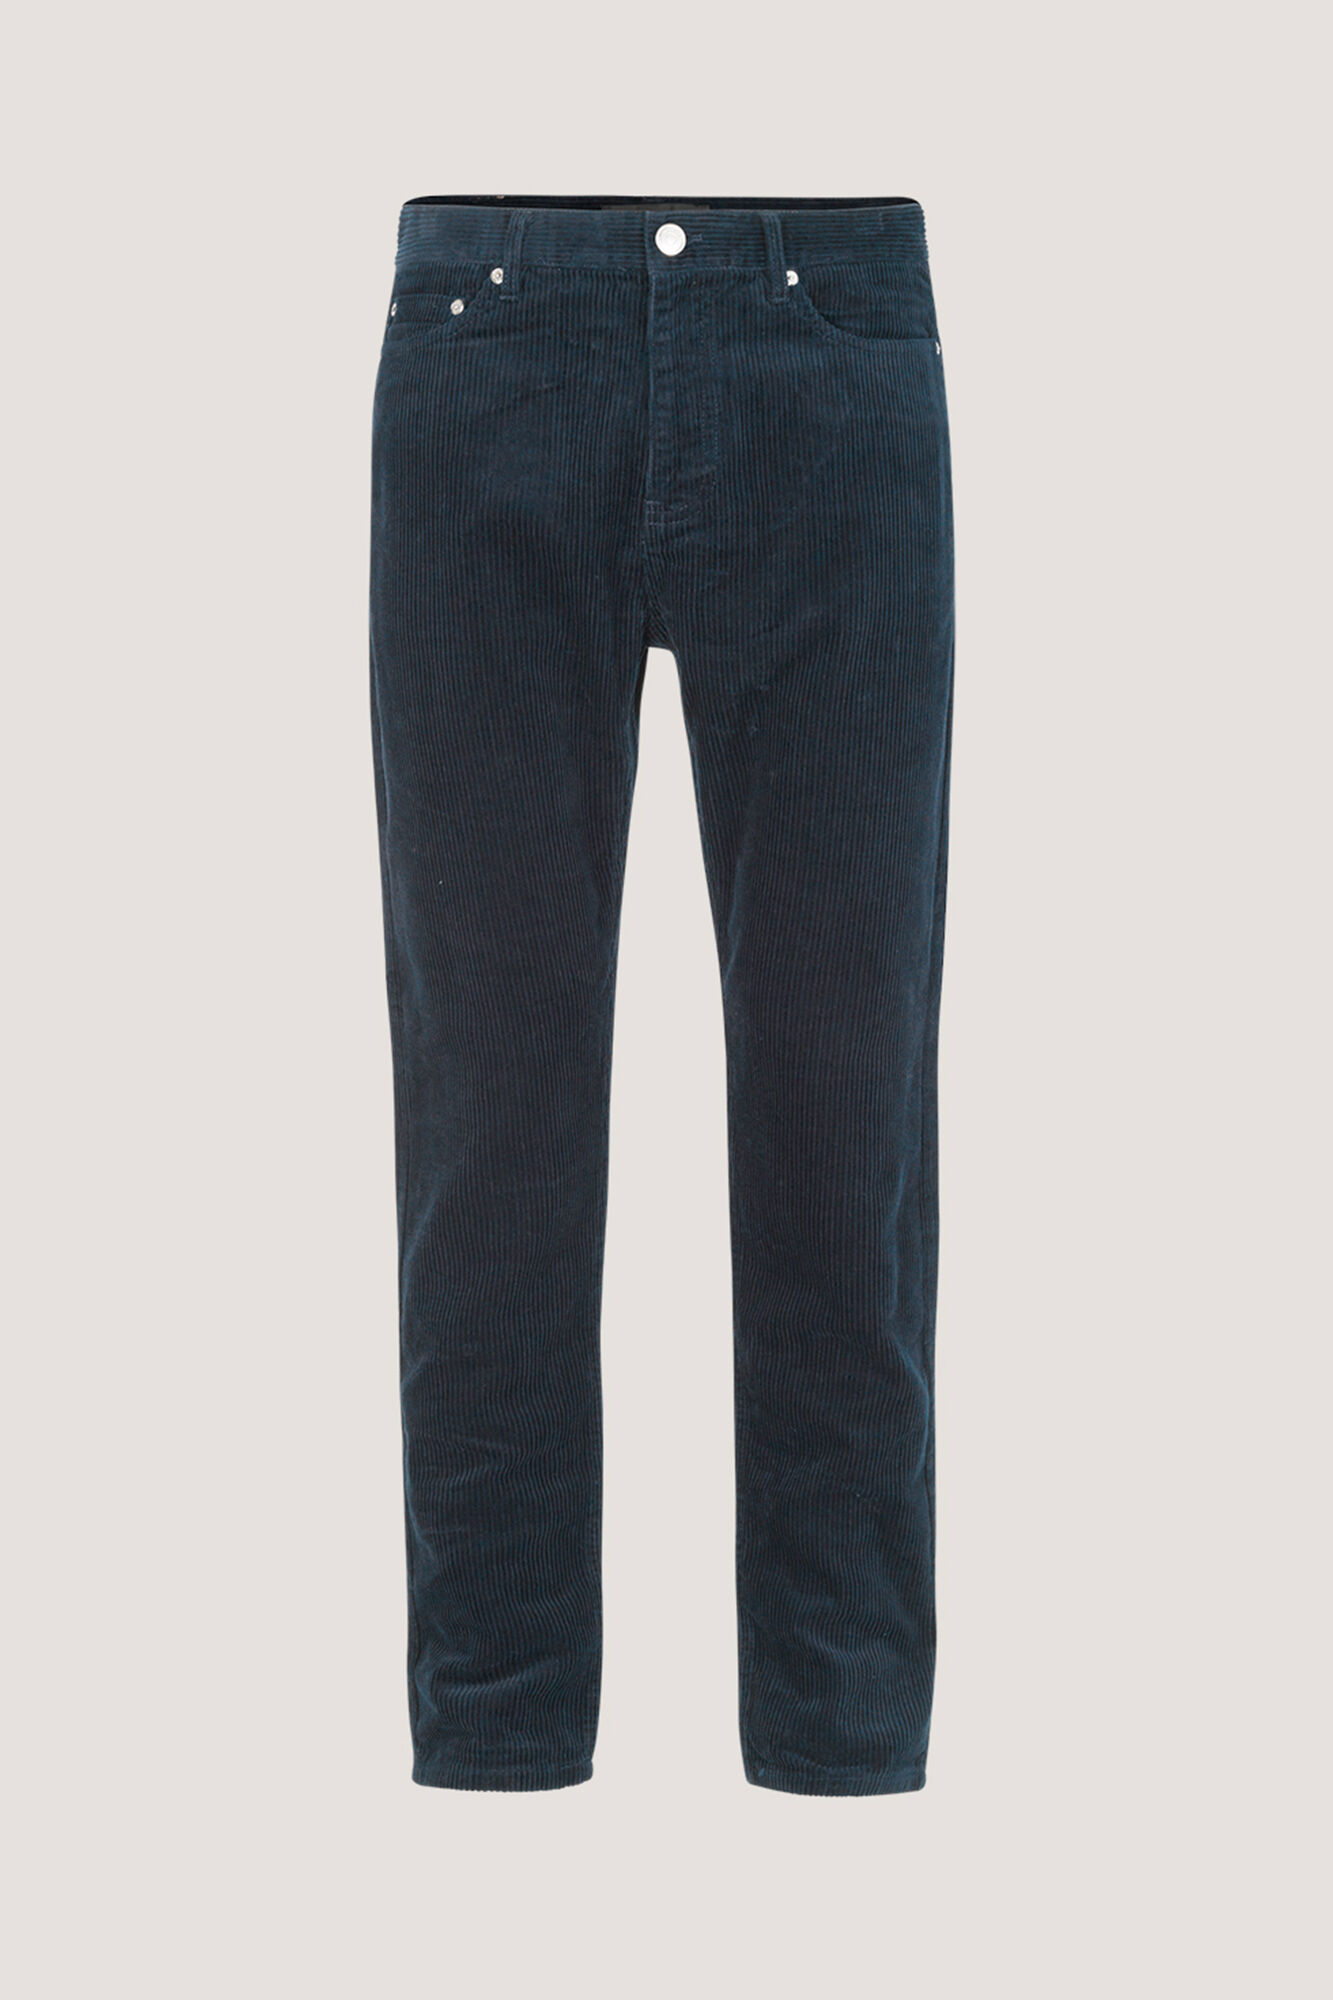 Cosmo jeans 10690